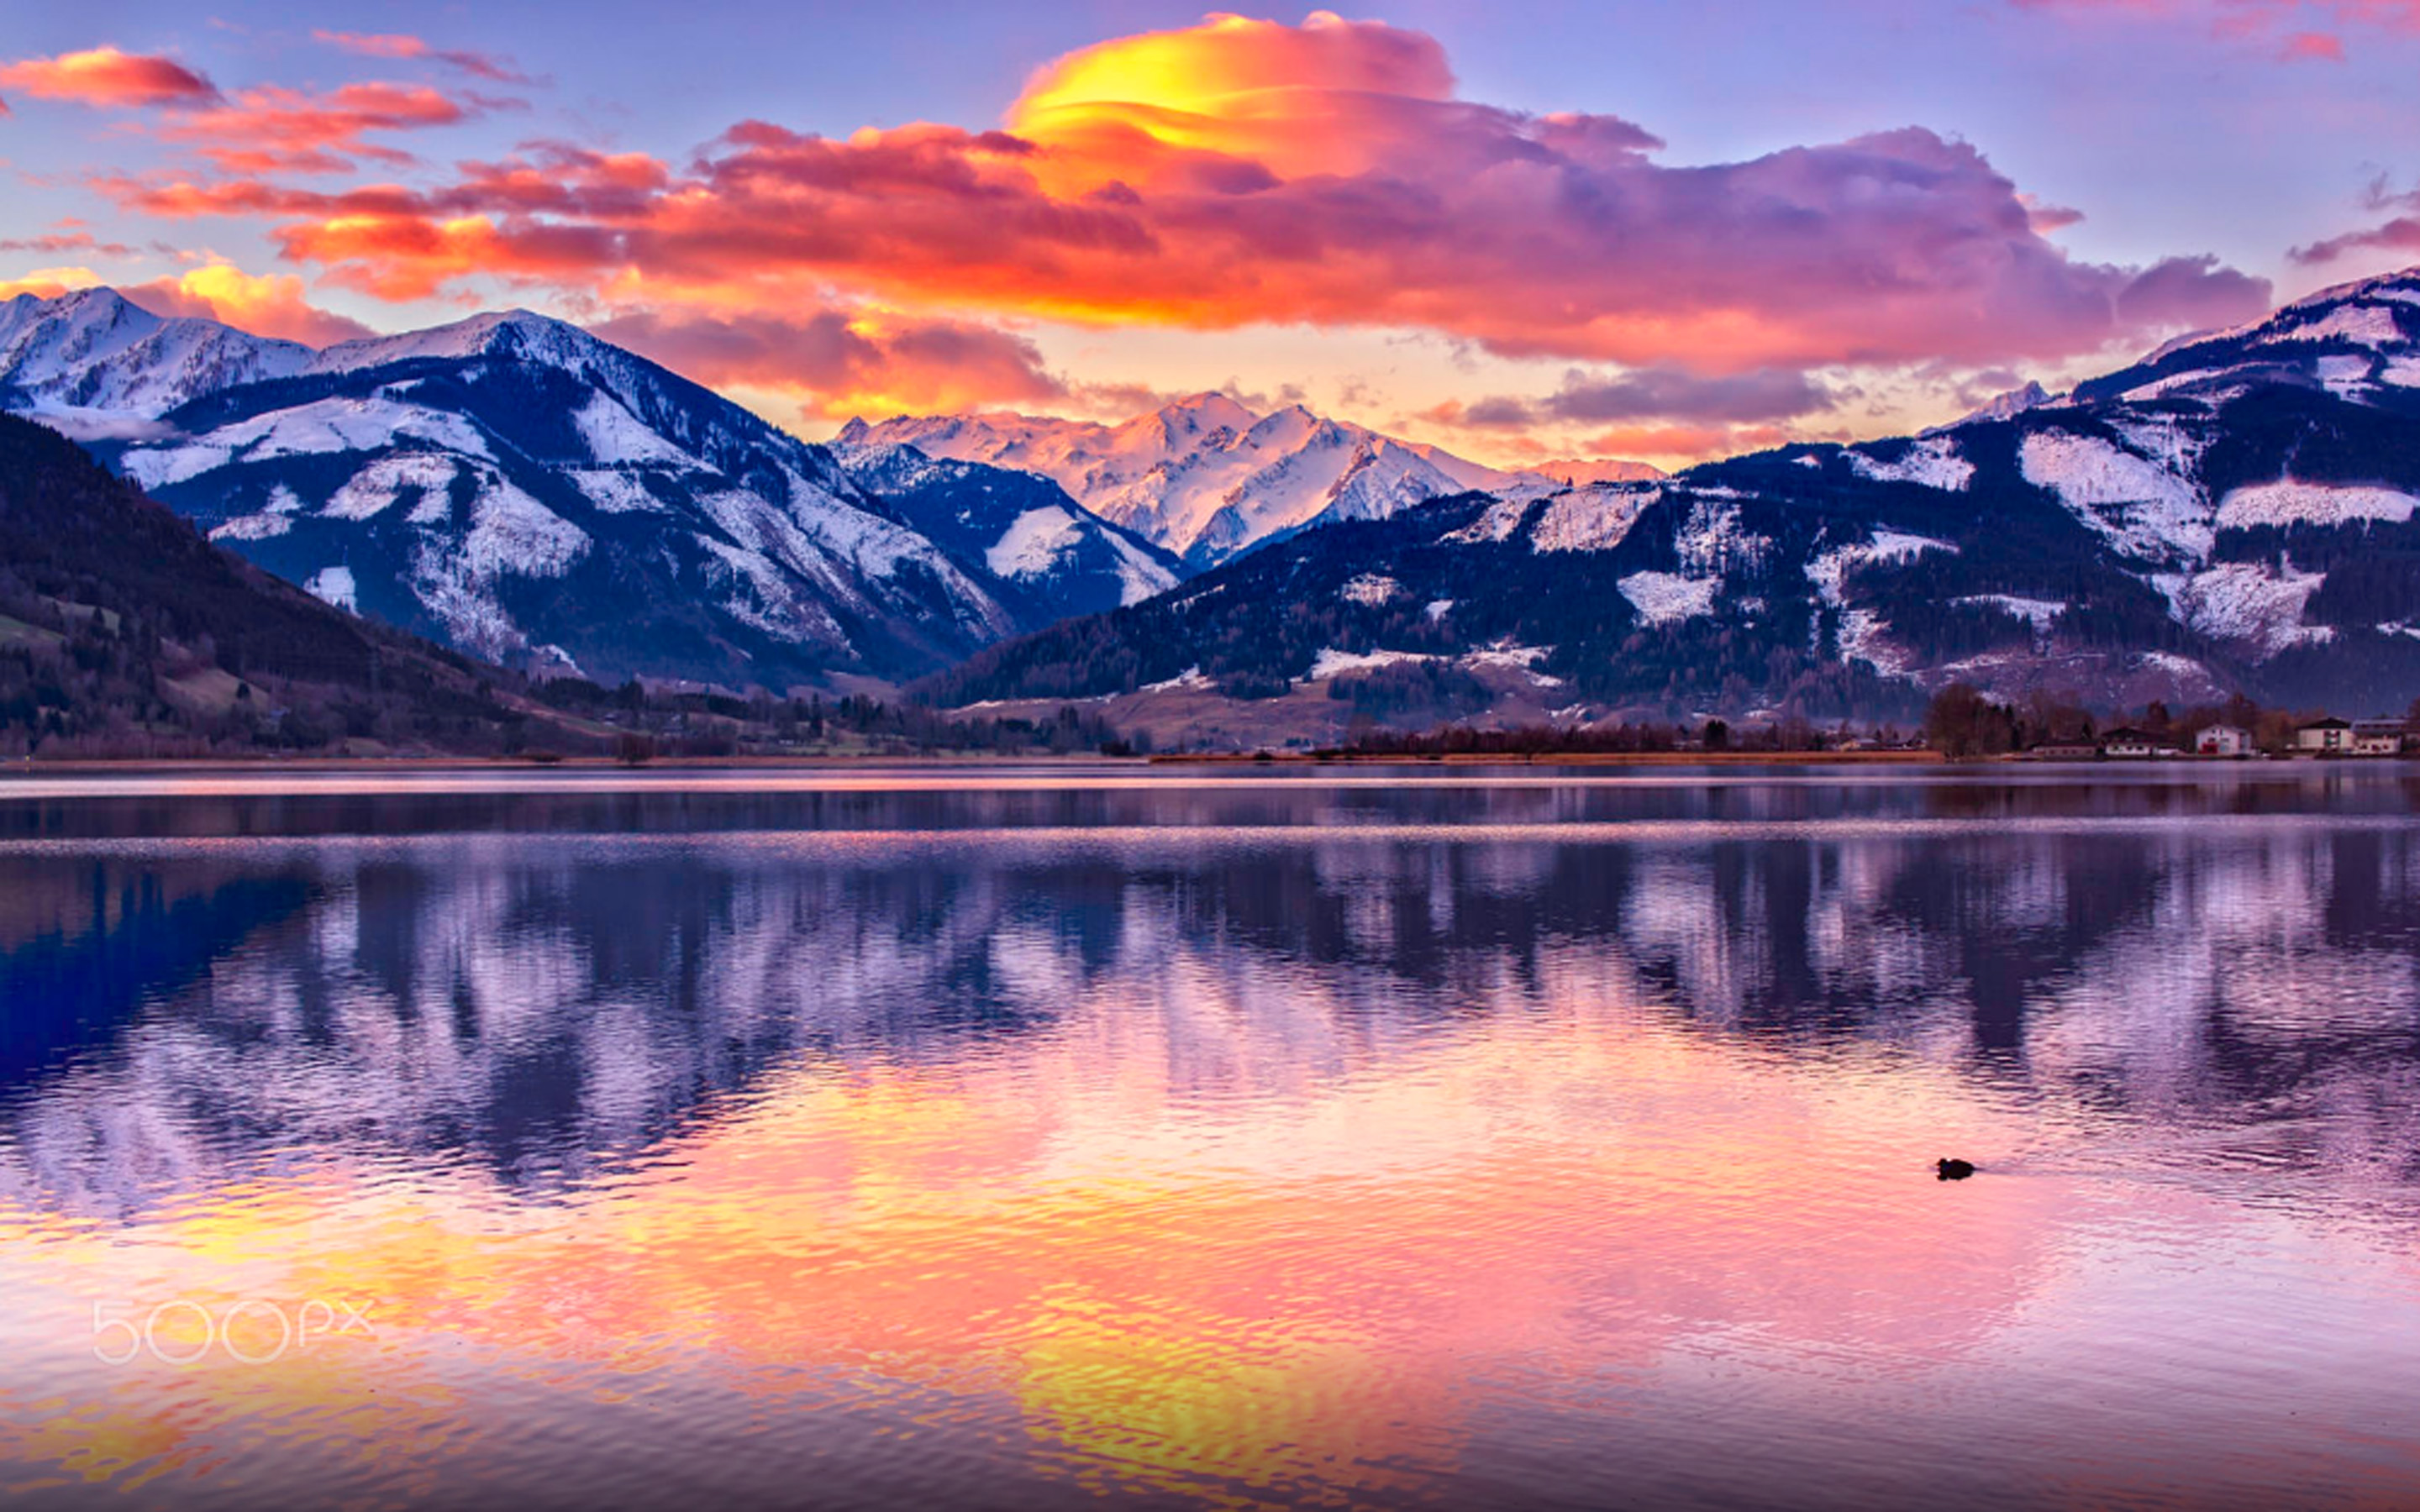 Free Beautiful Desktop Wallpapers For The Fall Sunrise On The Zell Am See Lake In Austria Beautiful Hd